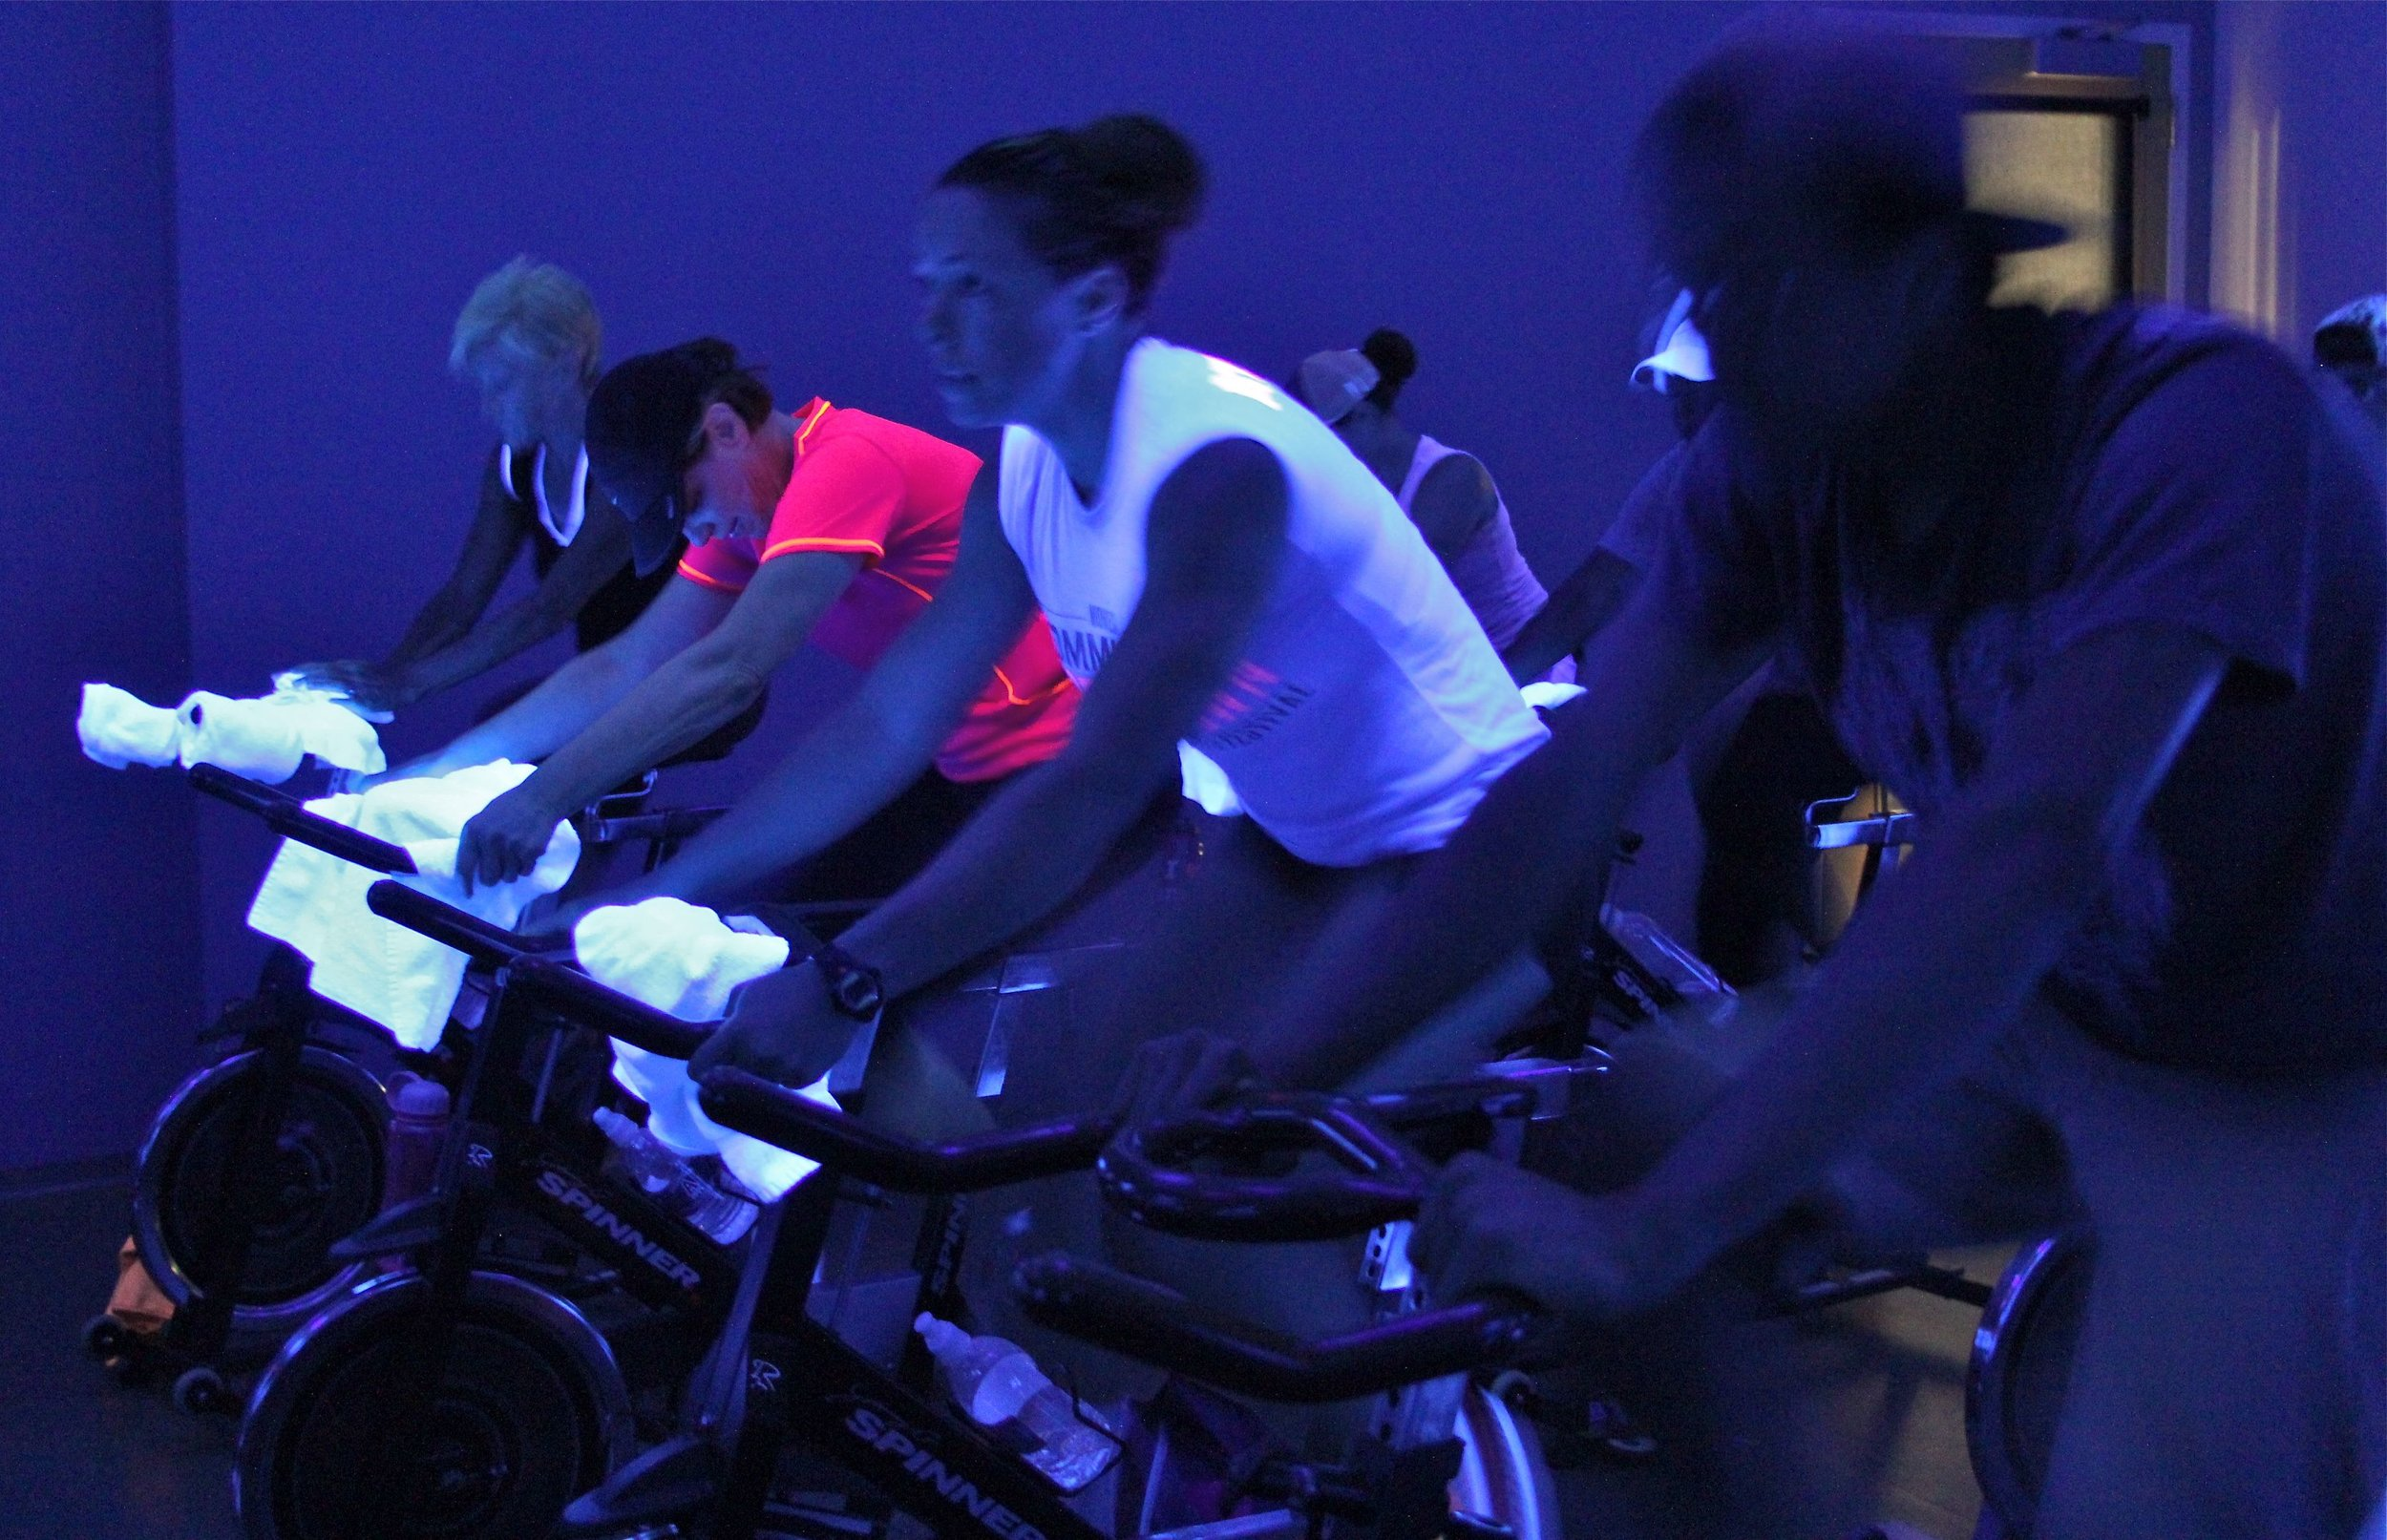 AN ACTUAL SHOT FROM MY SPIN CLASS. PHOTO CRED: DAVID ALESHIRE